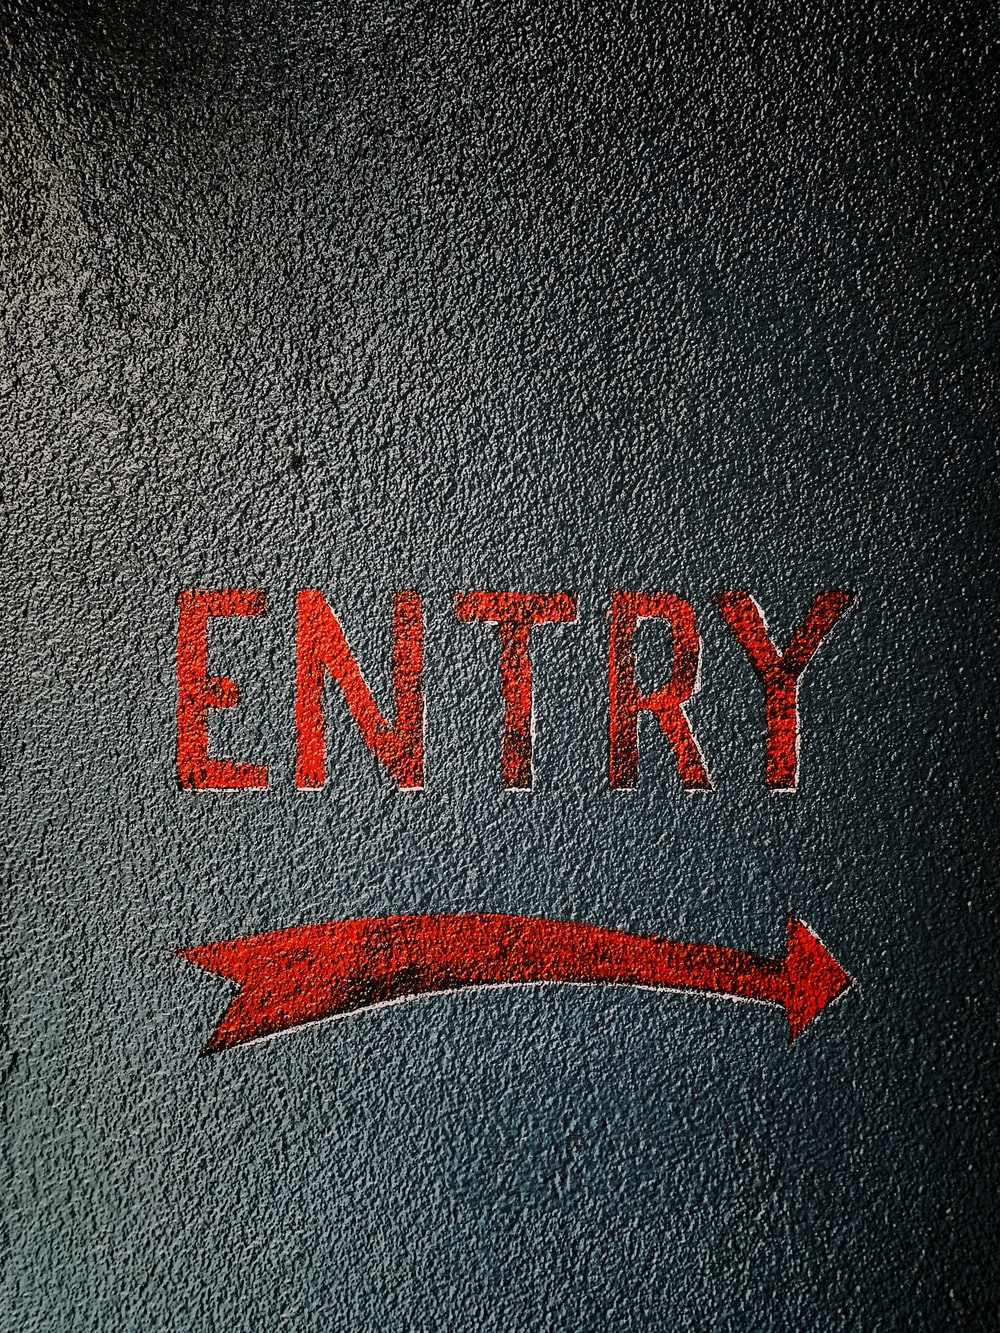 red Entry signage